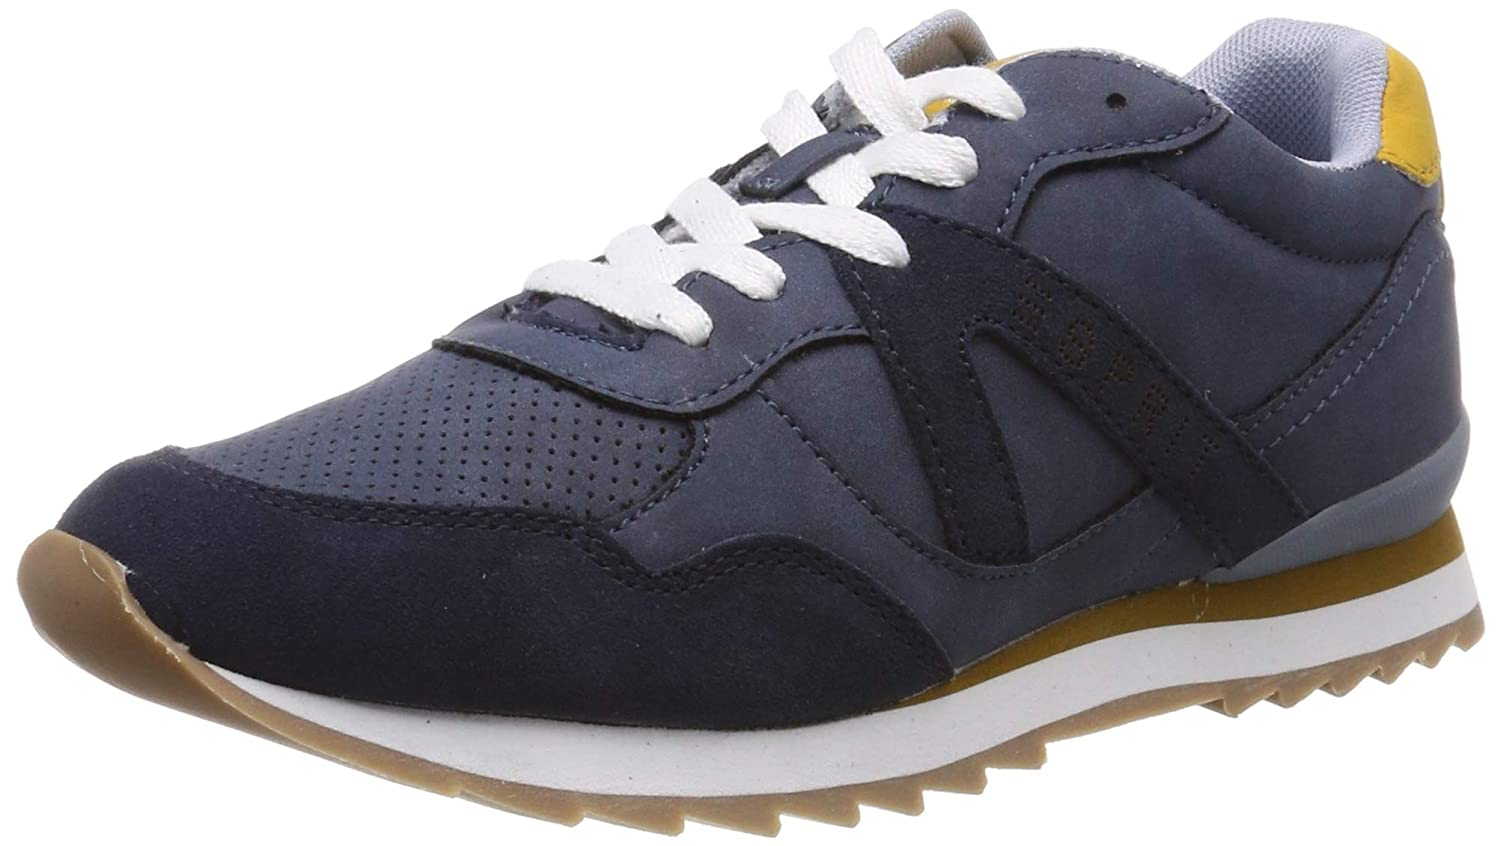 bluee (Navy 400) ESPRIT Women's Astro Lu Low-Top Sneakers